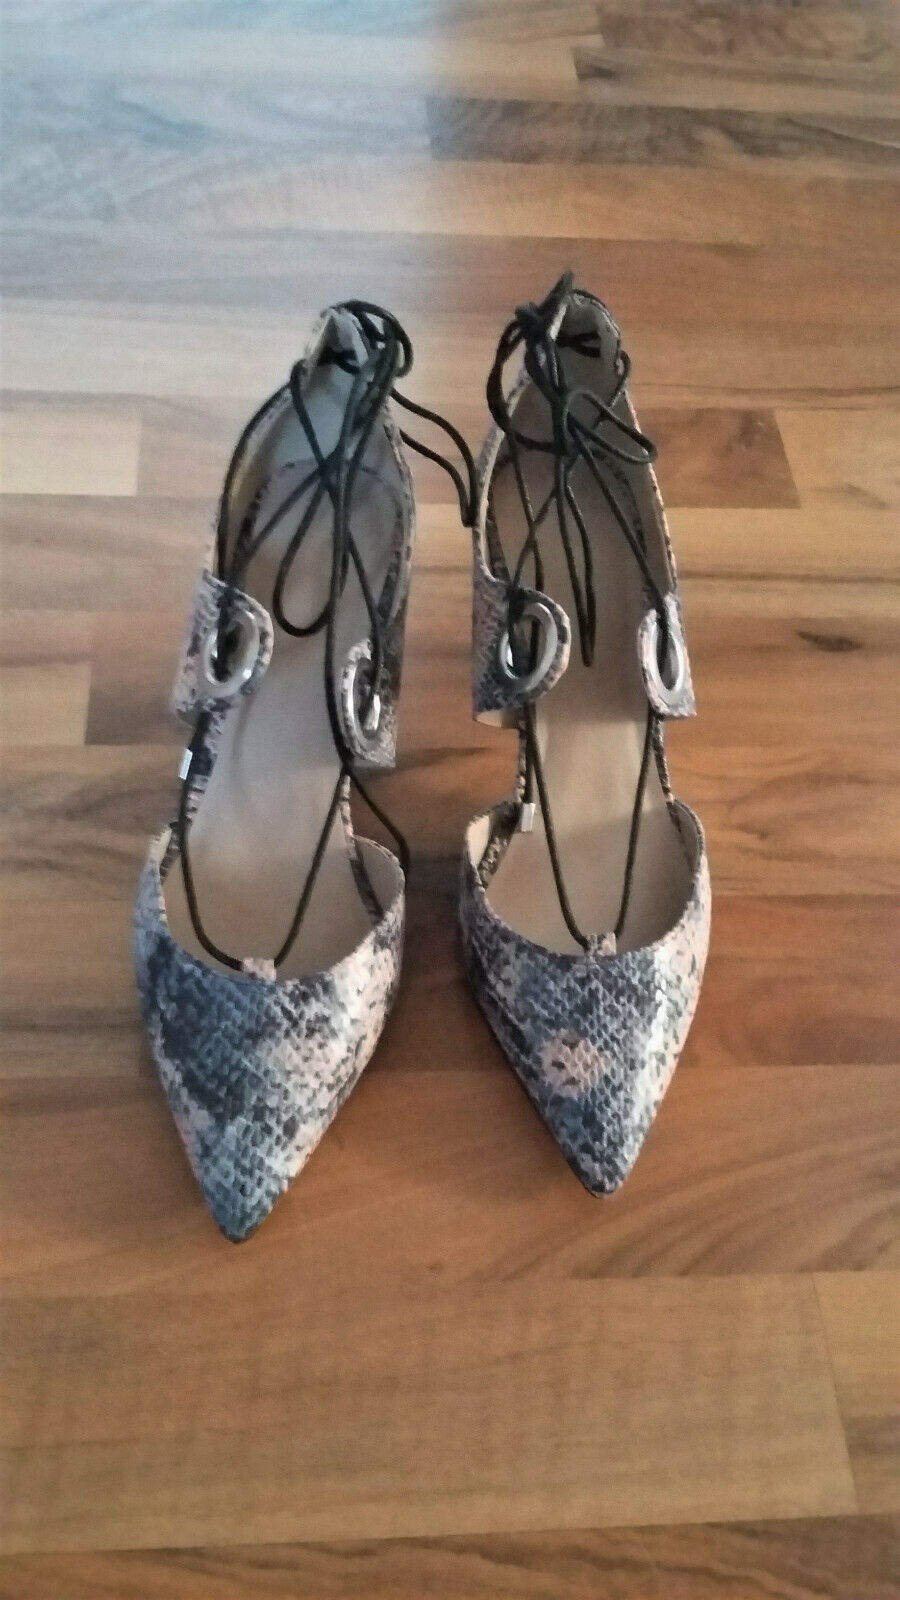 Asos grey beige snake pointed lace up shoes UK 4 EUR 37 BNWT